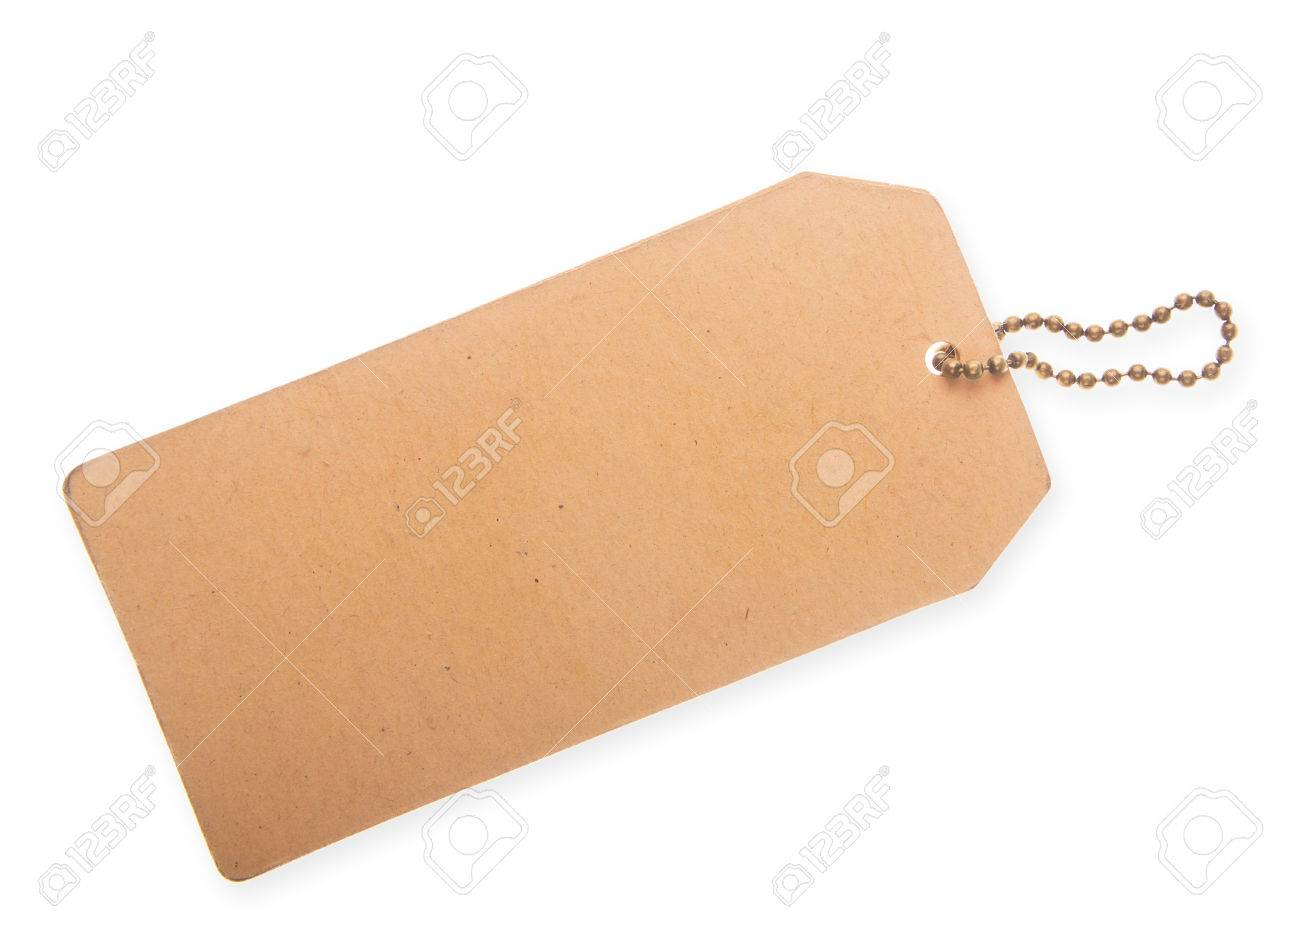 Cardboard price tag isolated on a white background - 51793377